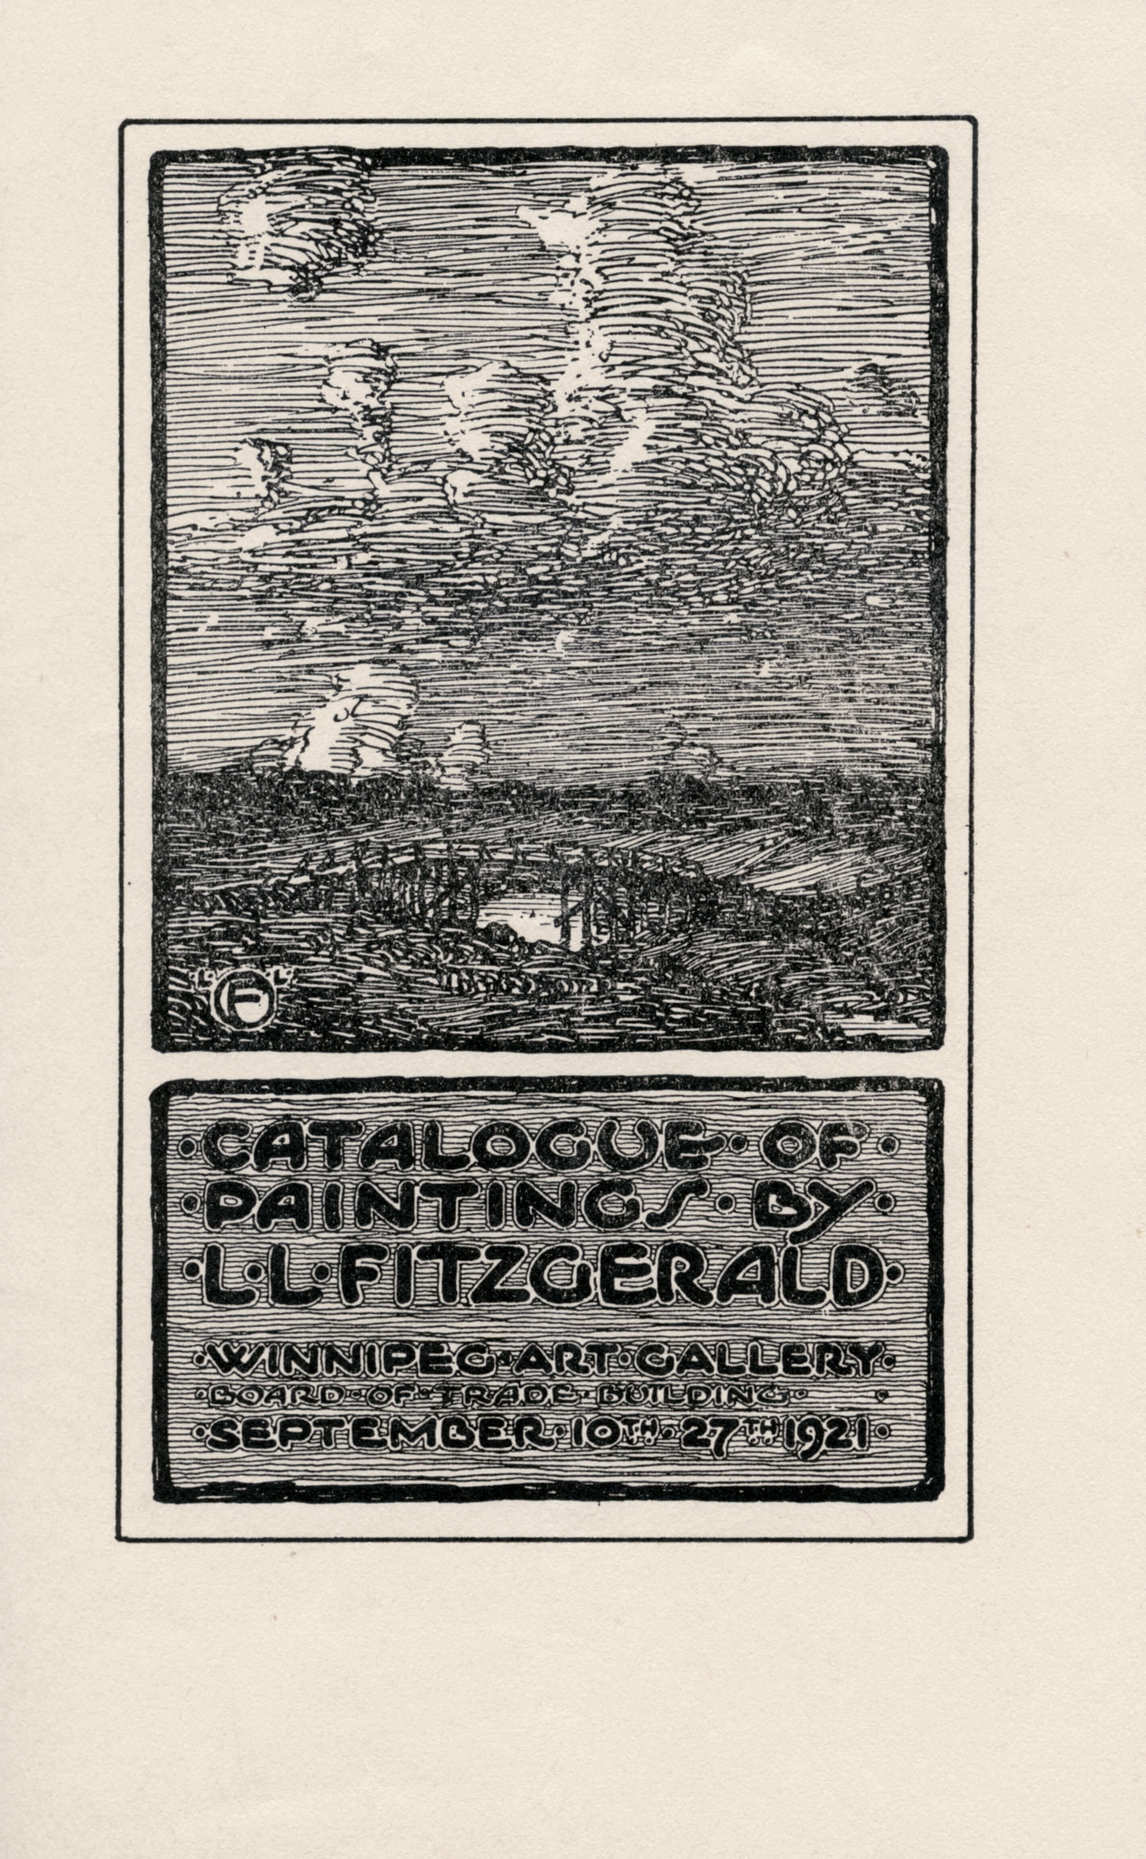 Art Canada Institute, Lionel LeMoine Fitzgerald, Cover of Catalogue of Paintings by L.L. FitzGerald, Winnipeg Art Gallery, Board of Trade Building, Sept. 10–27, 1921